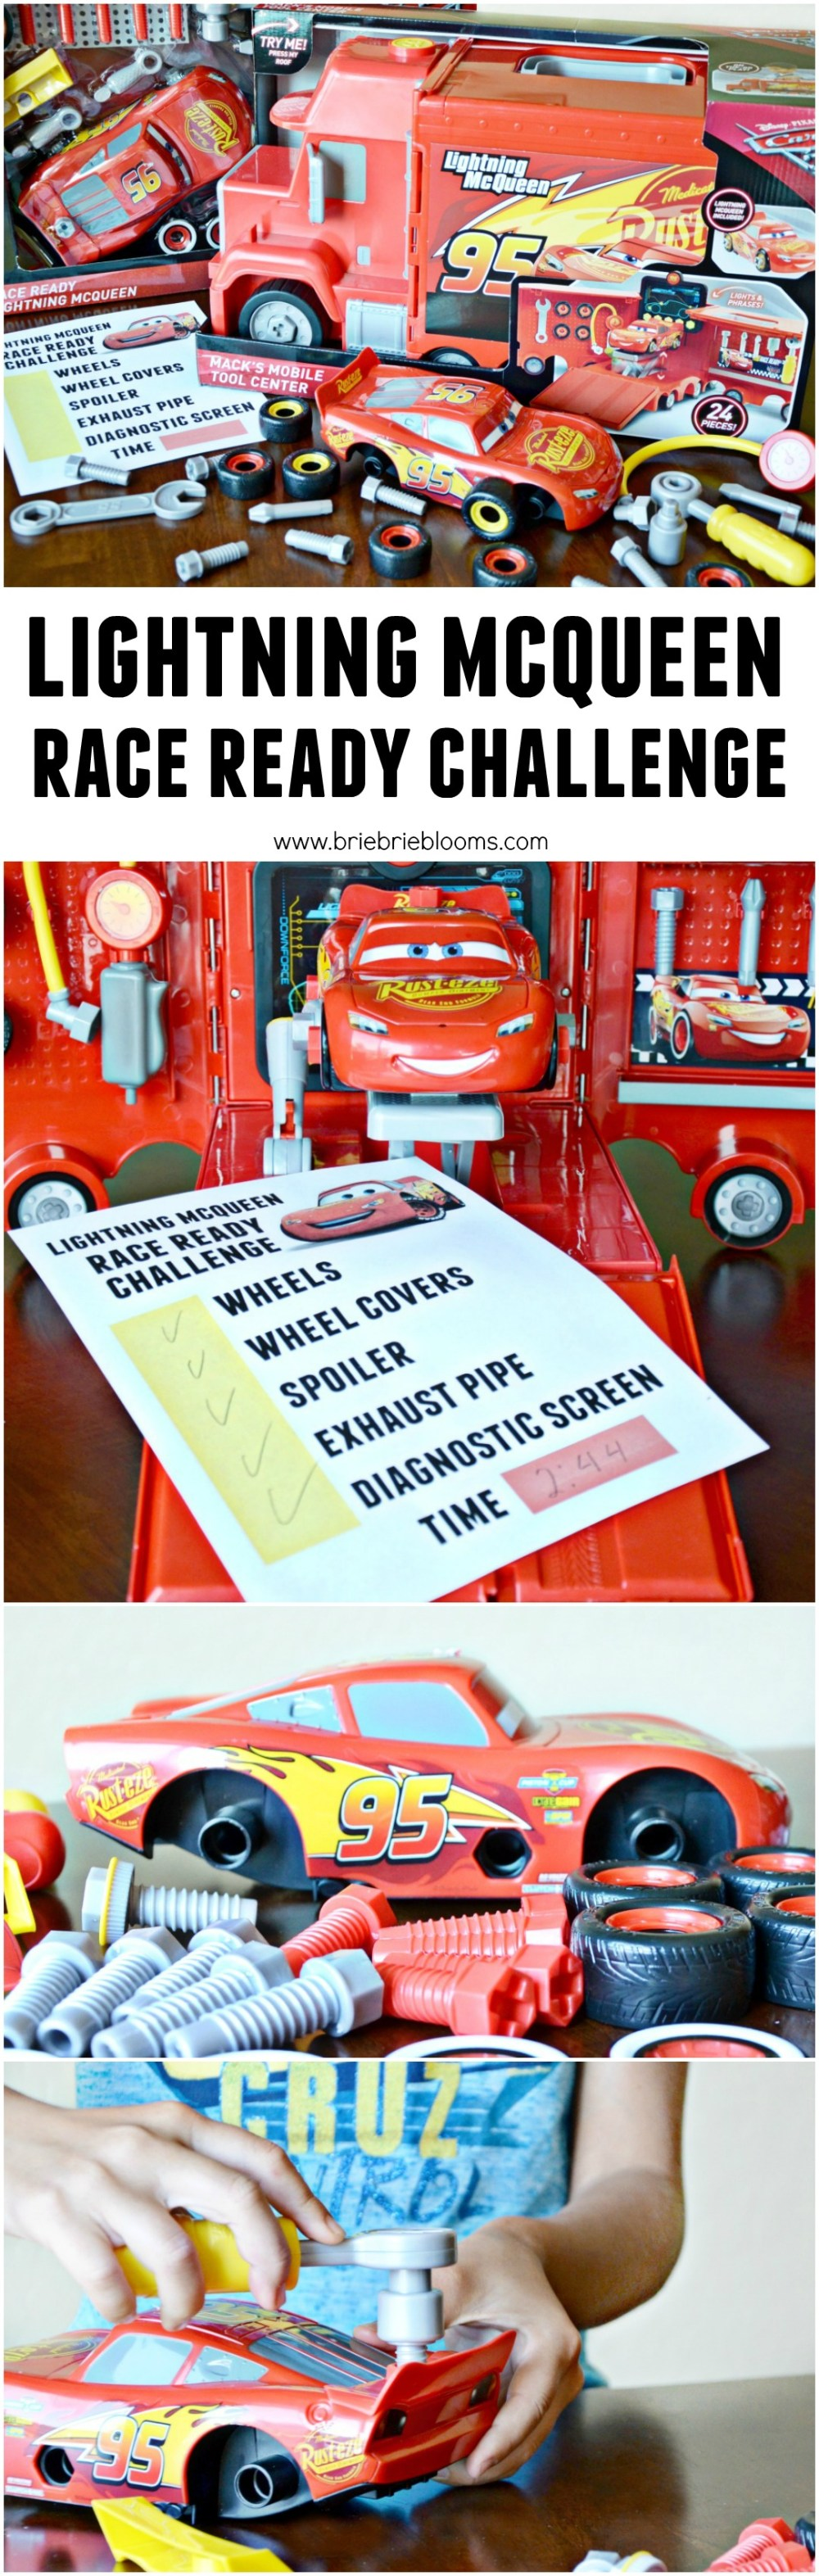 medium resolution of see how quickly you can get lightning mcqueen race ready with a free printable lightning mcqueen